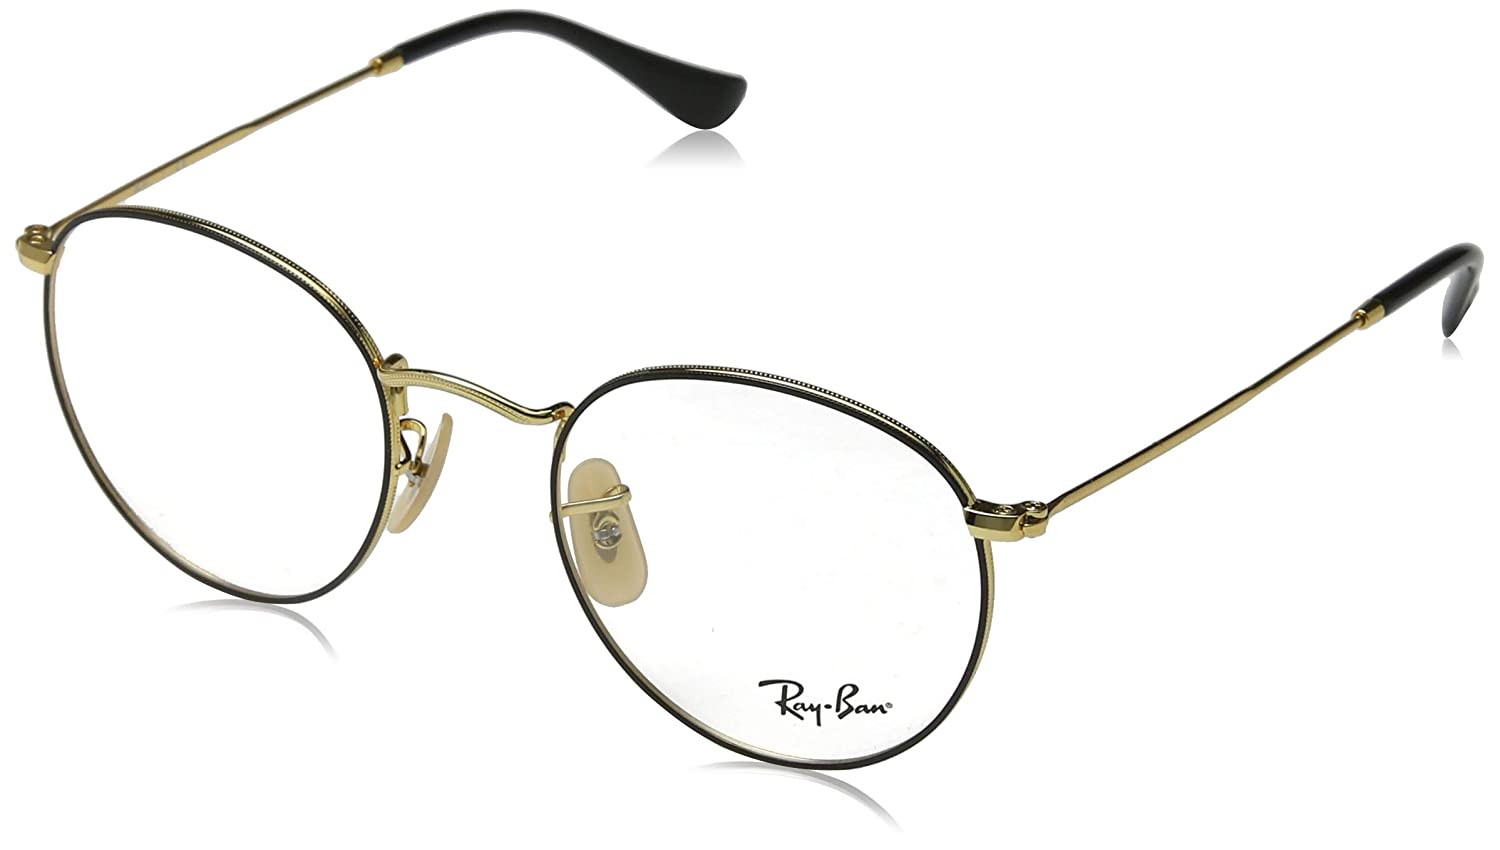 e080ece62dc3 Amazon.com: Ray-Ban Men's RX3447V Round Metal Eyeglasses Gold On Top Black  50mm: Clothing